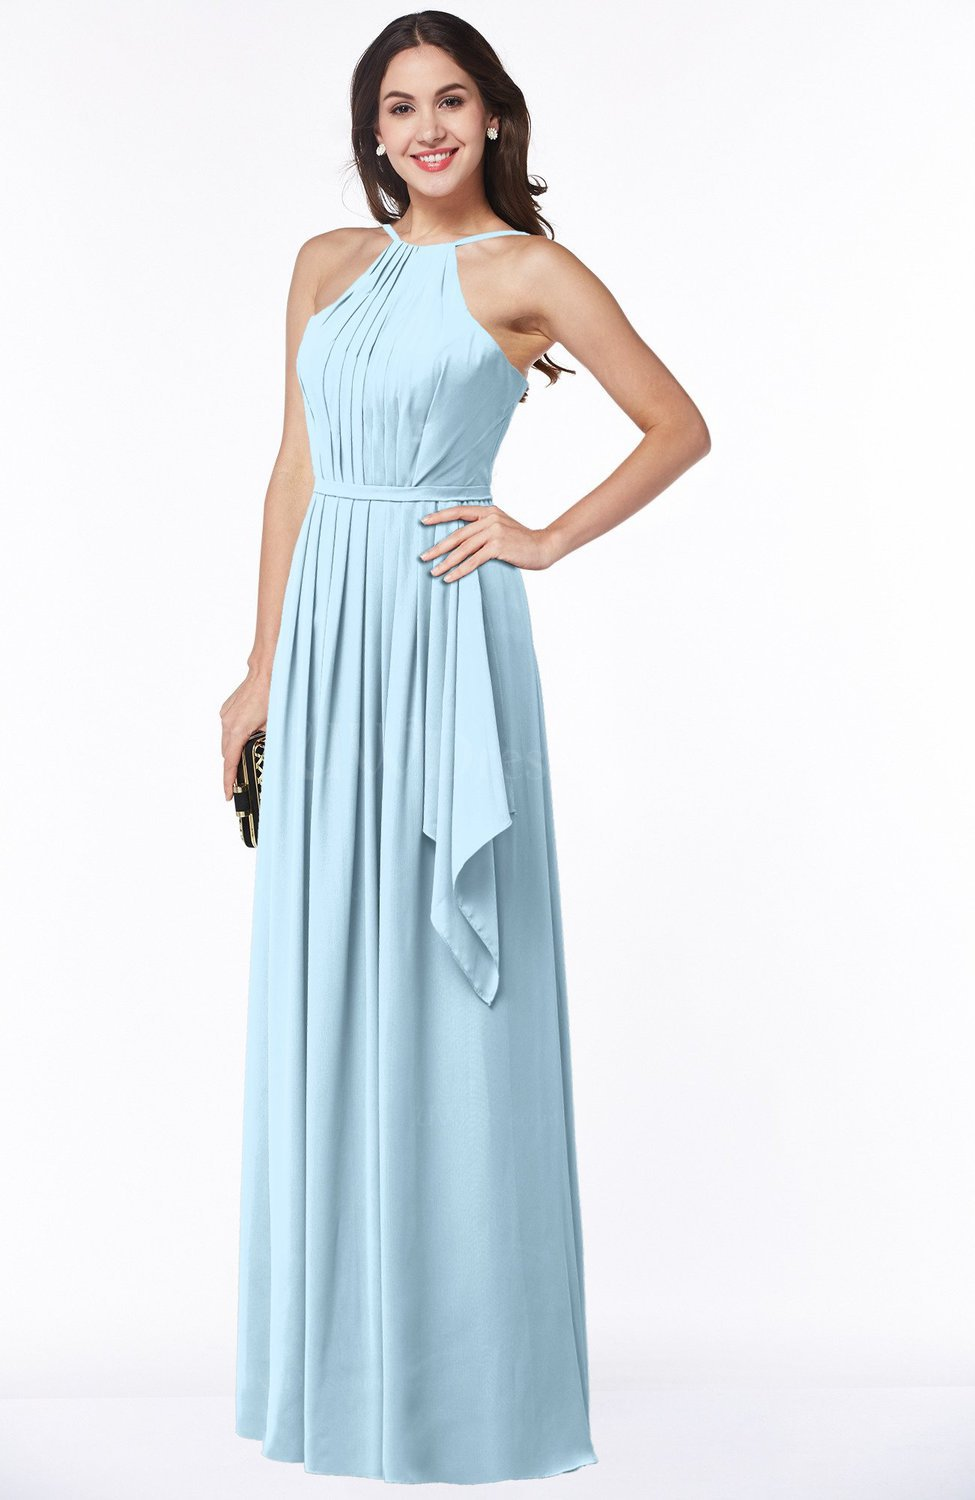 Mother of the Bride Ice Blue color - UWDress.com